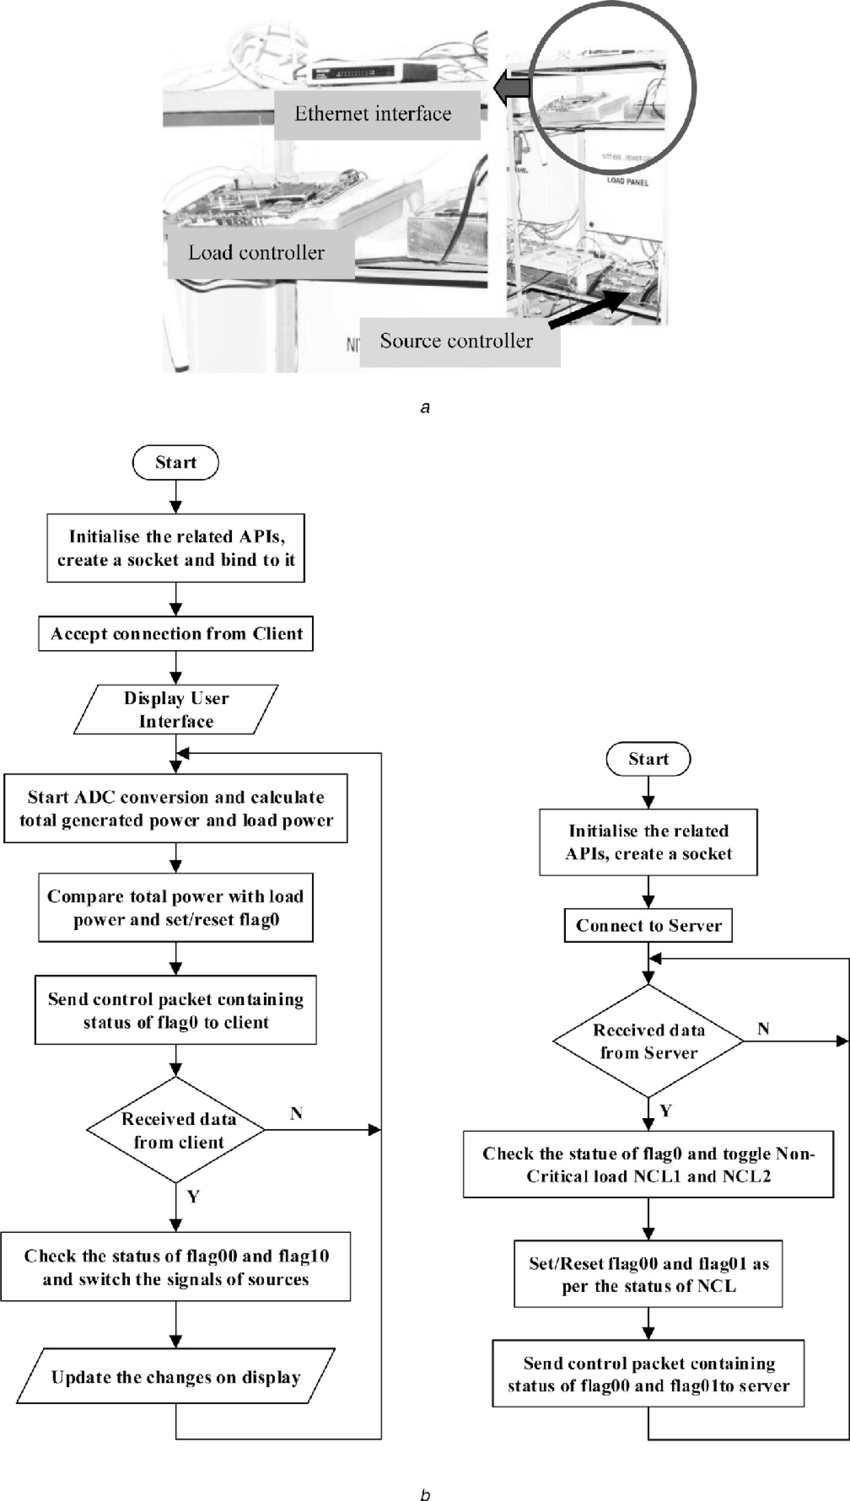 medium resolution of photograph and flow chart of the fpga controllers with ethernet connectivity a photograph of fpga controllers